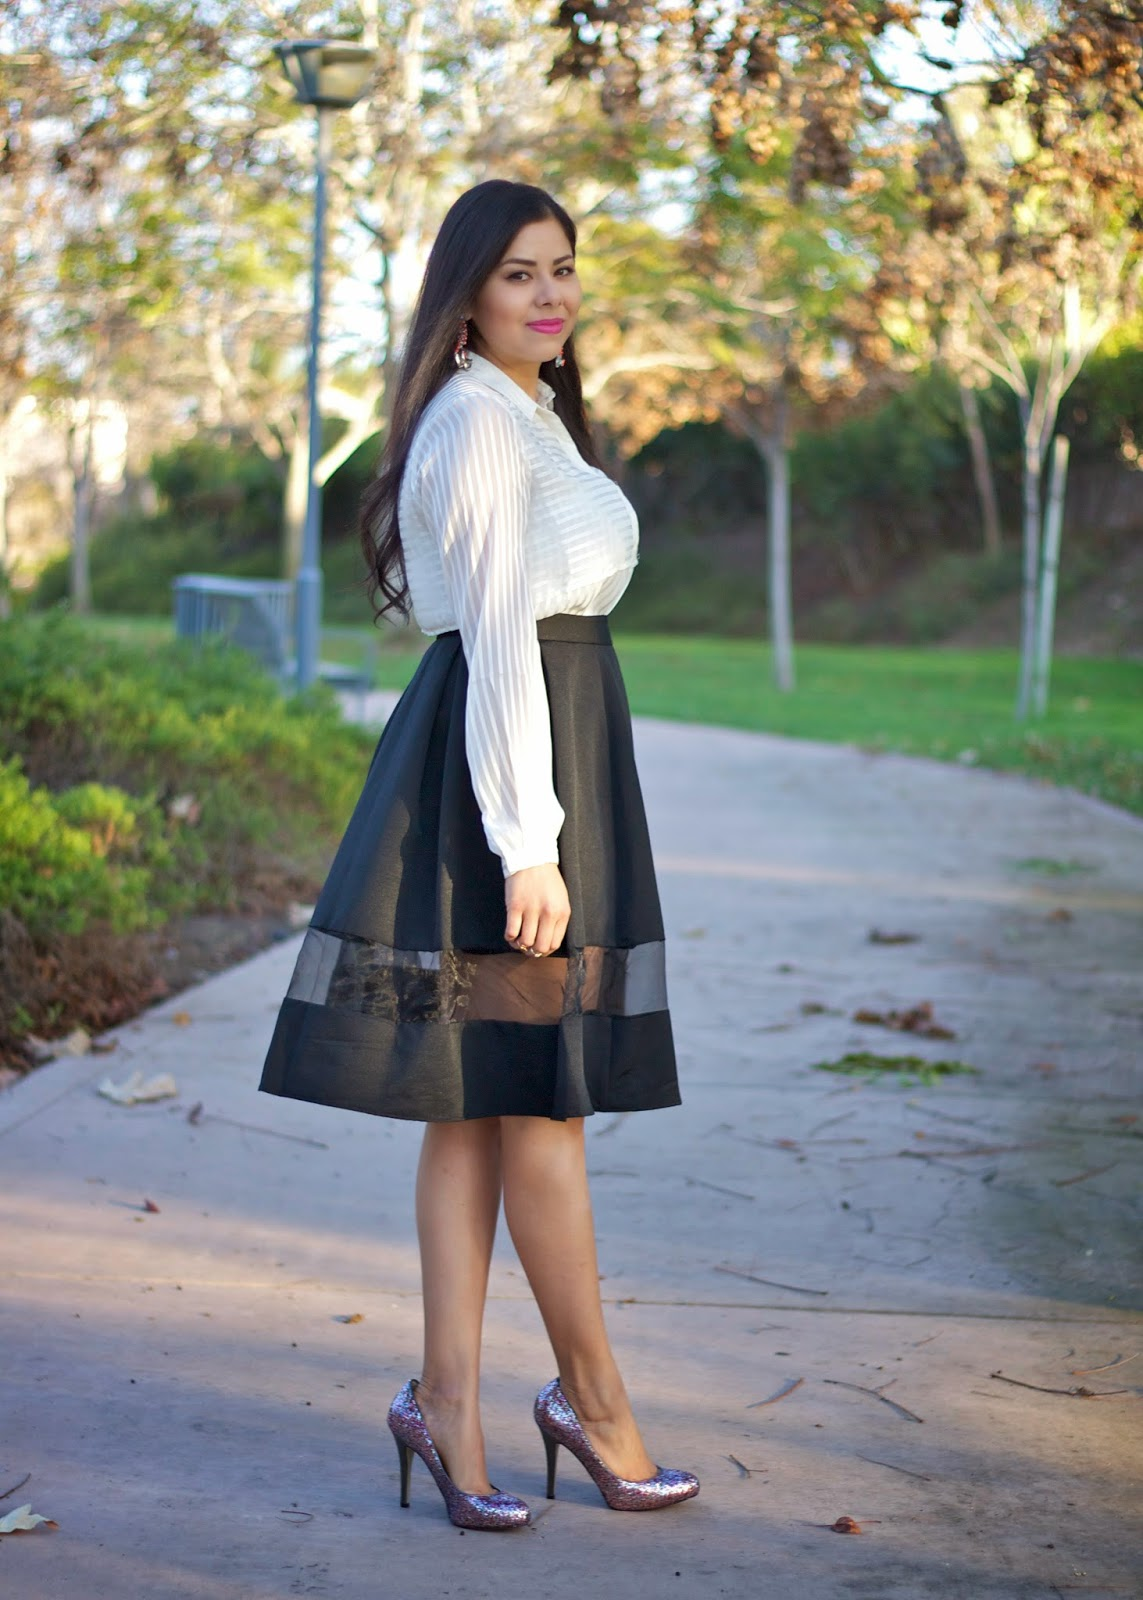 Express high waist full skirt with sheer panel